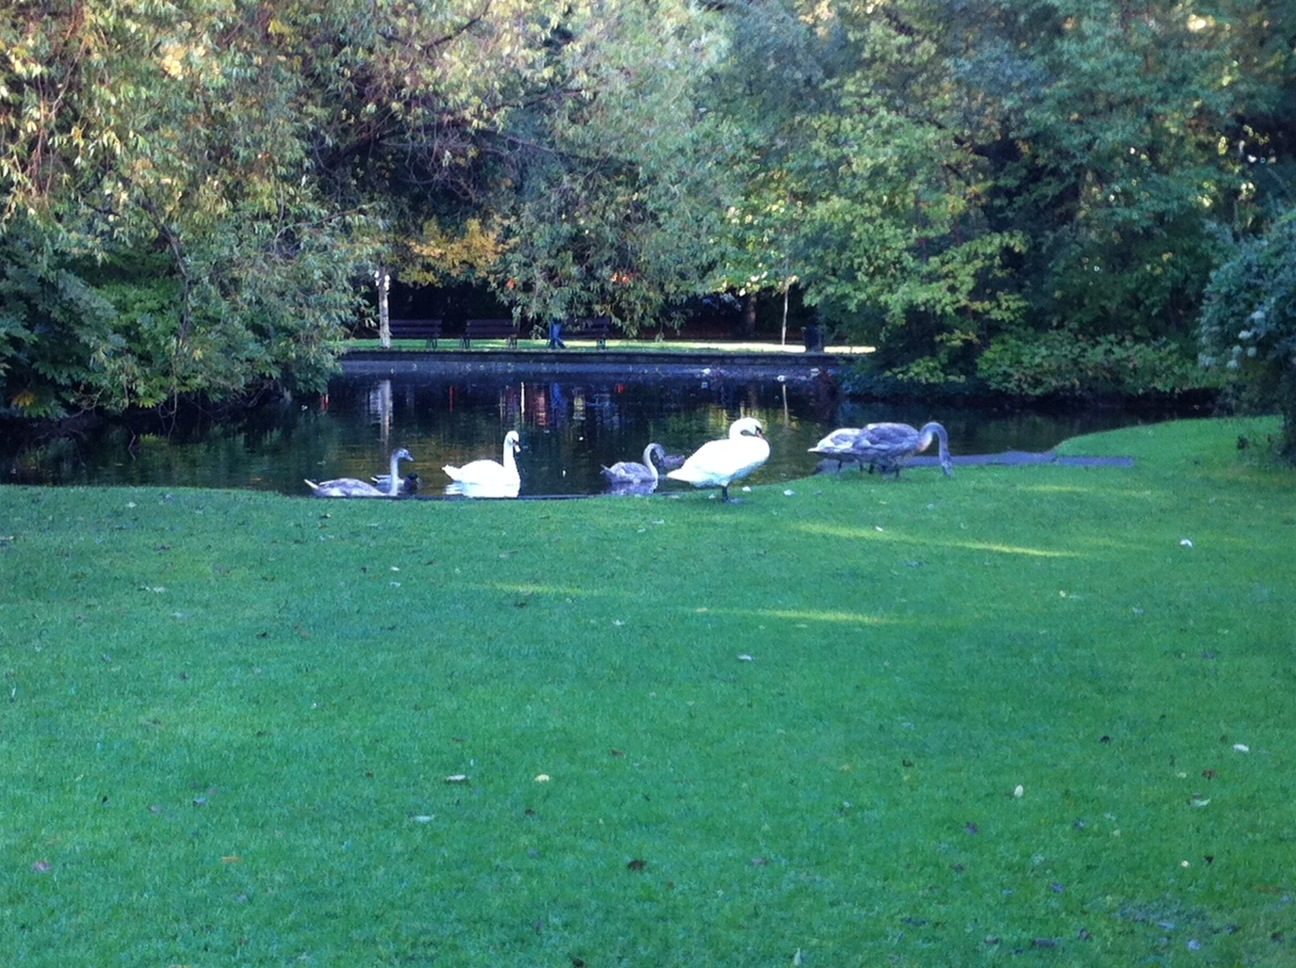 Stephen's Green has a wonderful pastoral ambience to it.